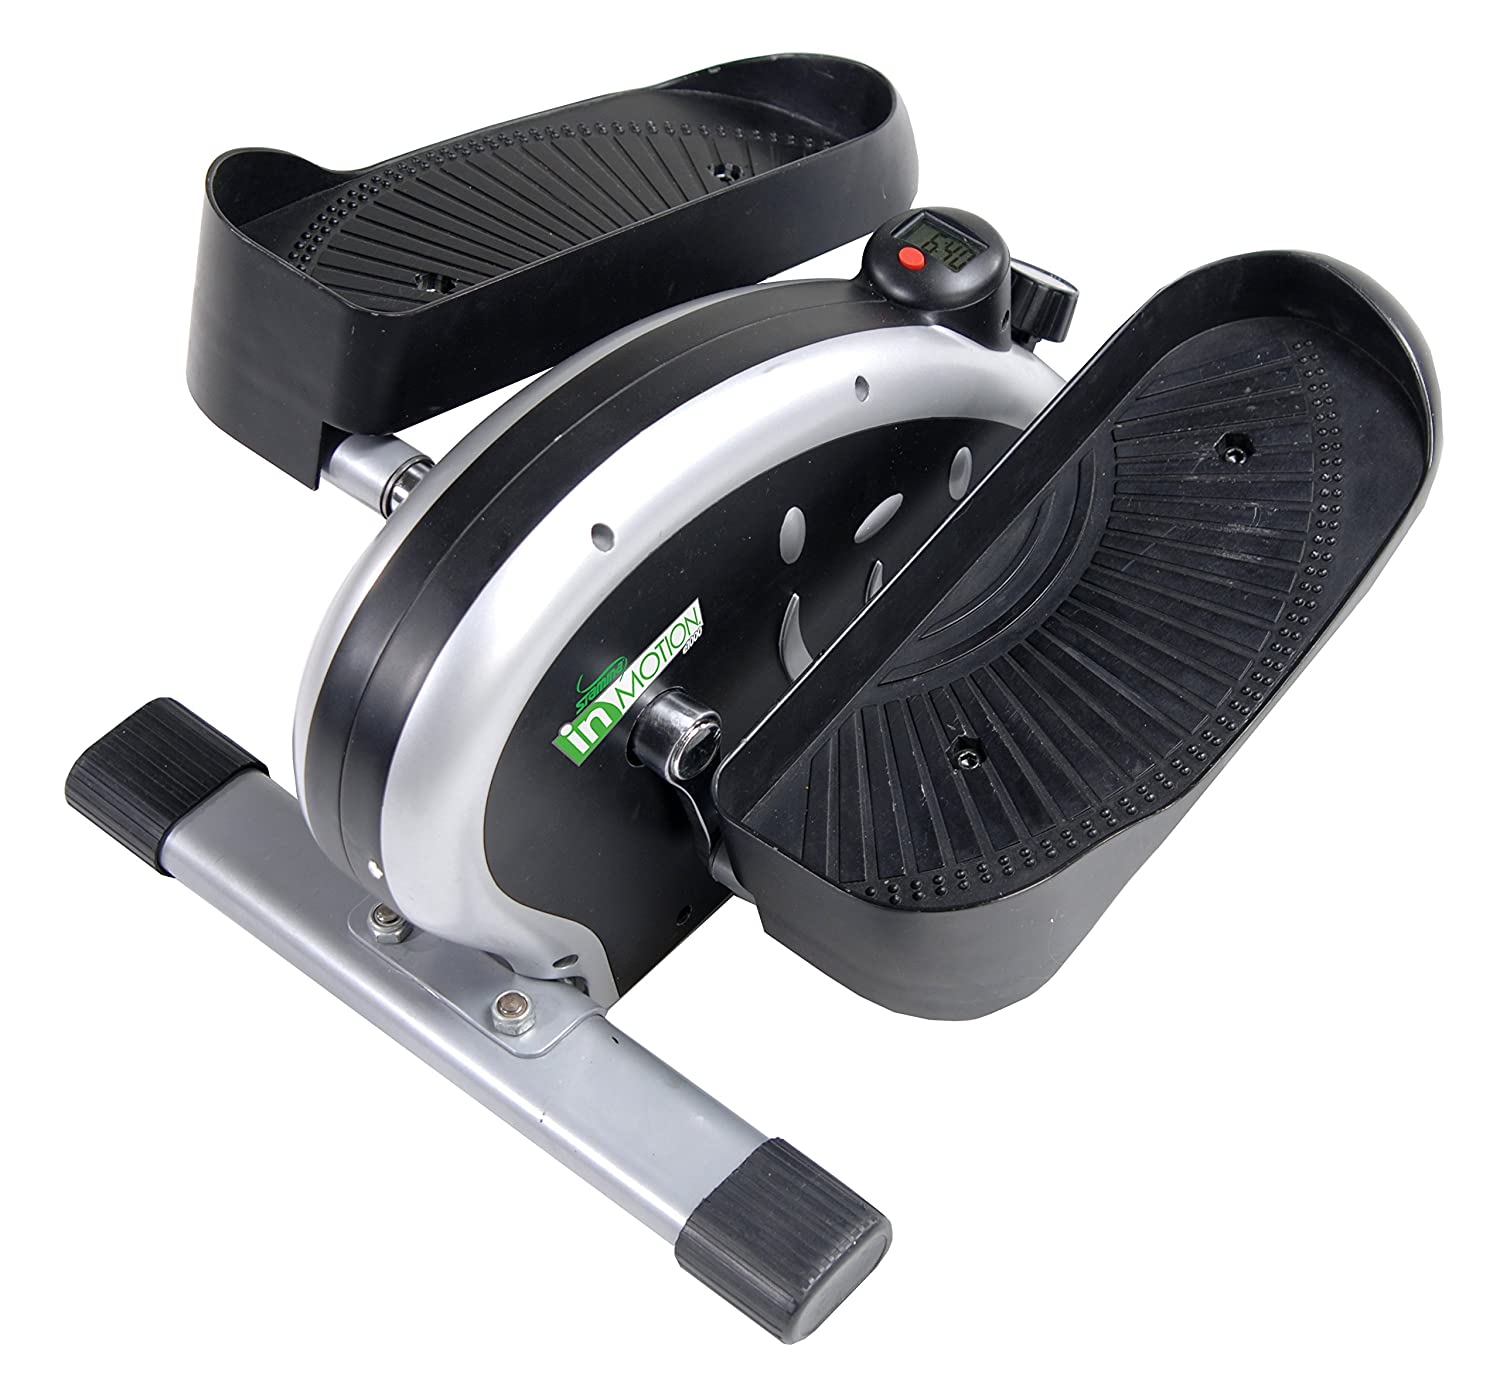 Stamina In-Motion Elliptical Trainer - fits under a desk